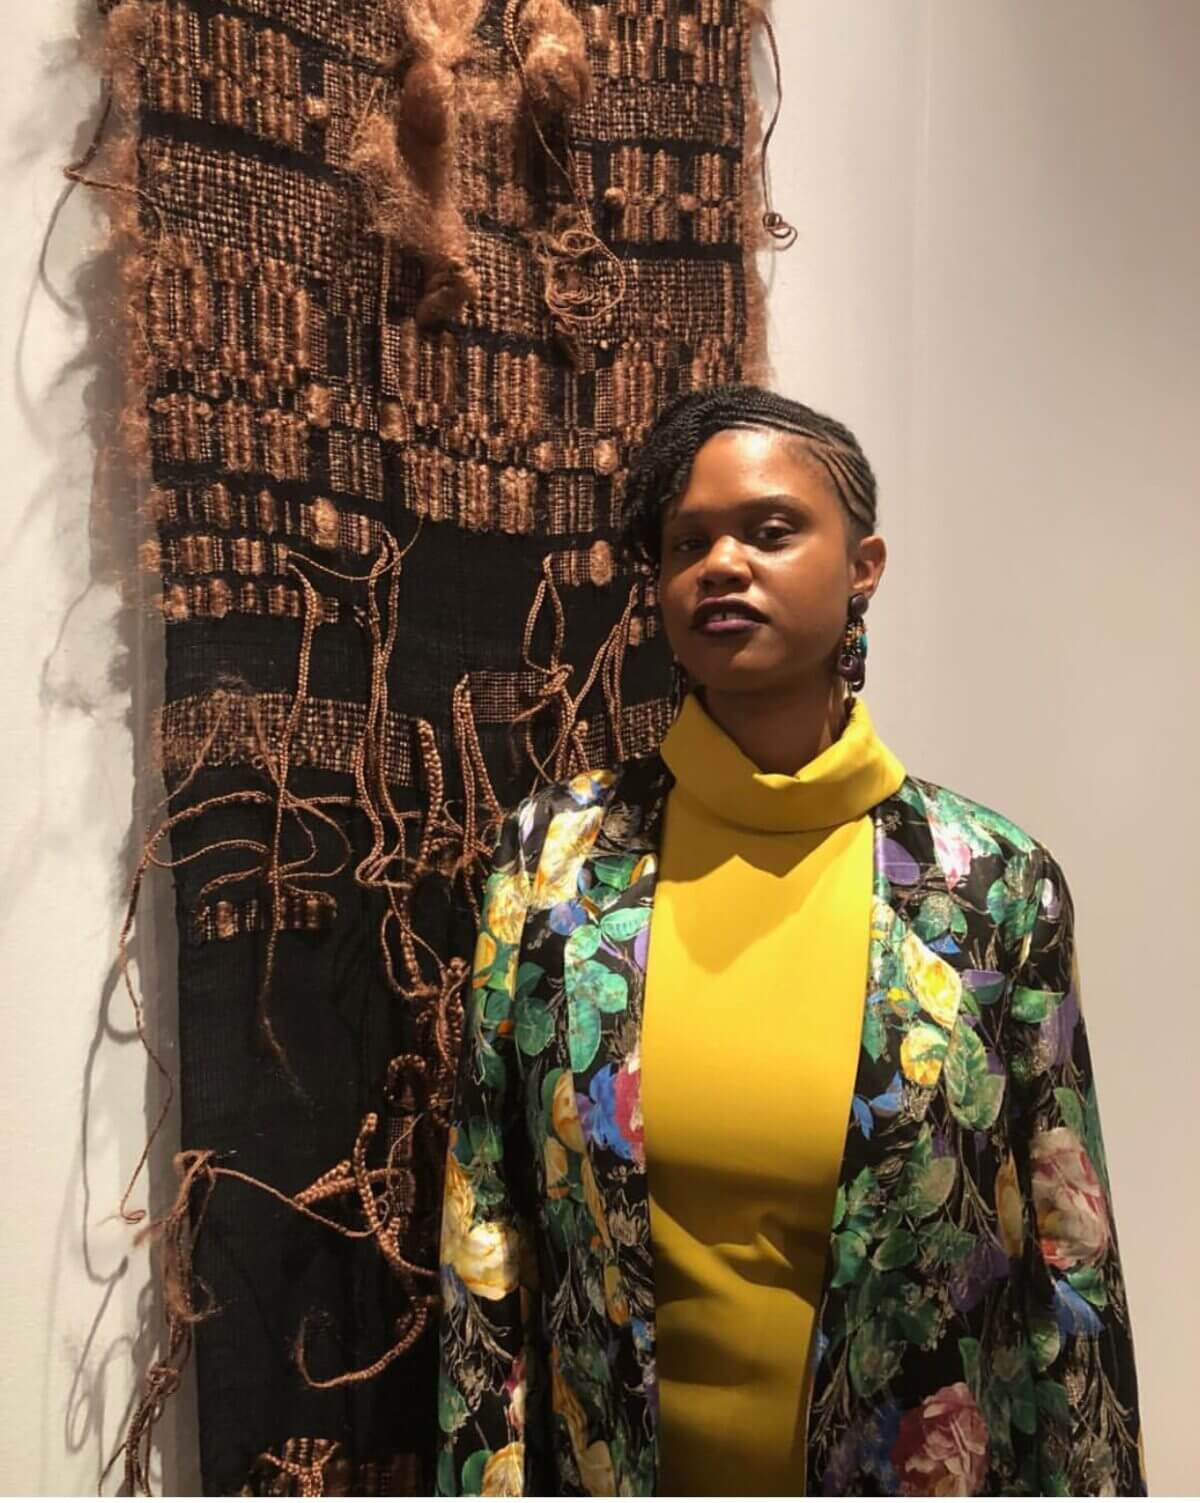 Woven Narratives: Chicago based artist SHENEQUA, pays homage to women who were instrumental in her life through the art she creates from synthetic hair by Daniel Dunson